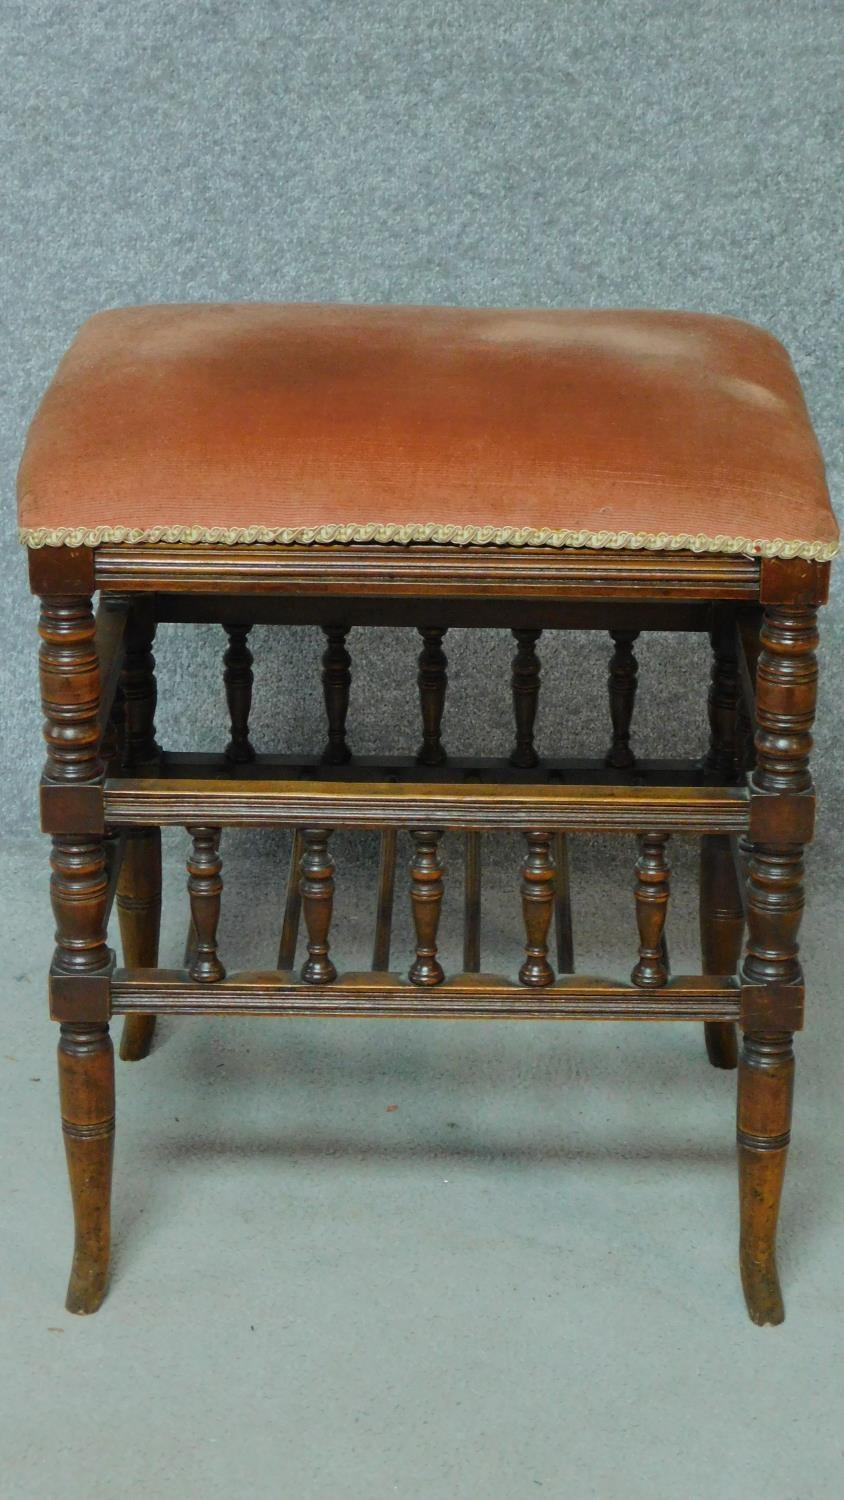 A 19th century walnut piano stool with fitted undertier for sheet music. H.55 W.46 D.36cm - Image 2 of 6